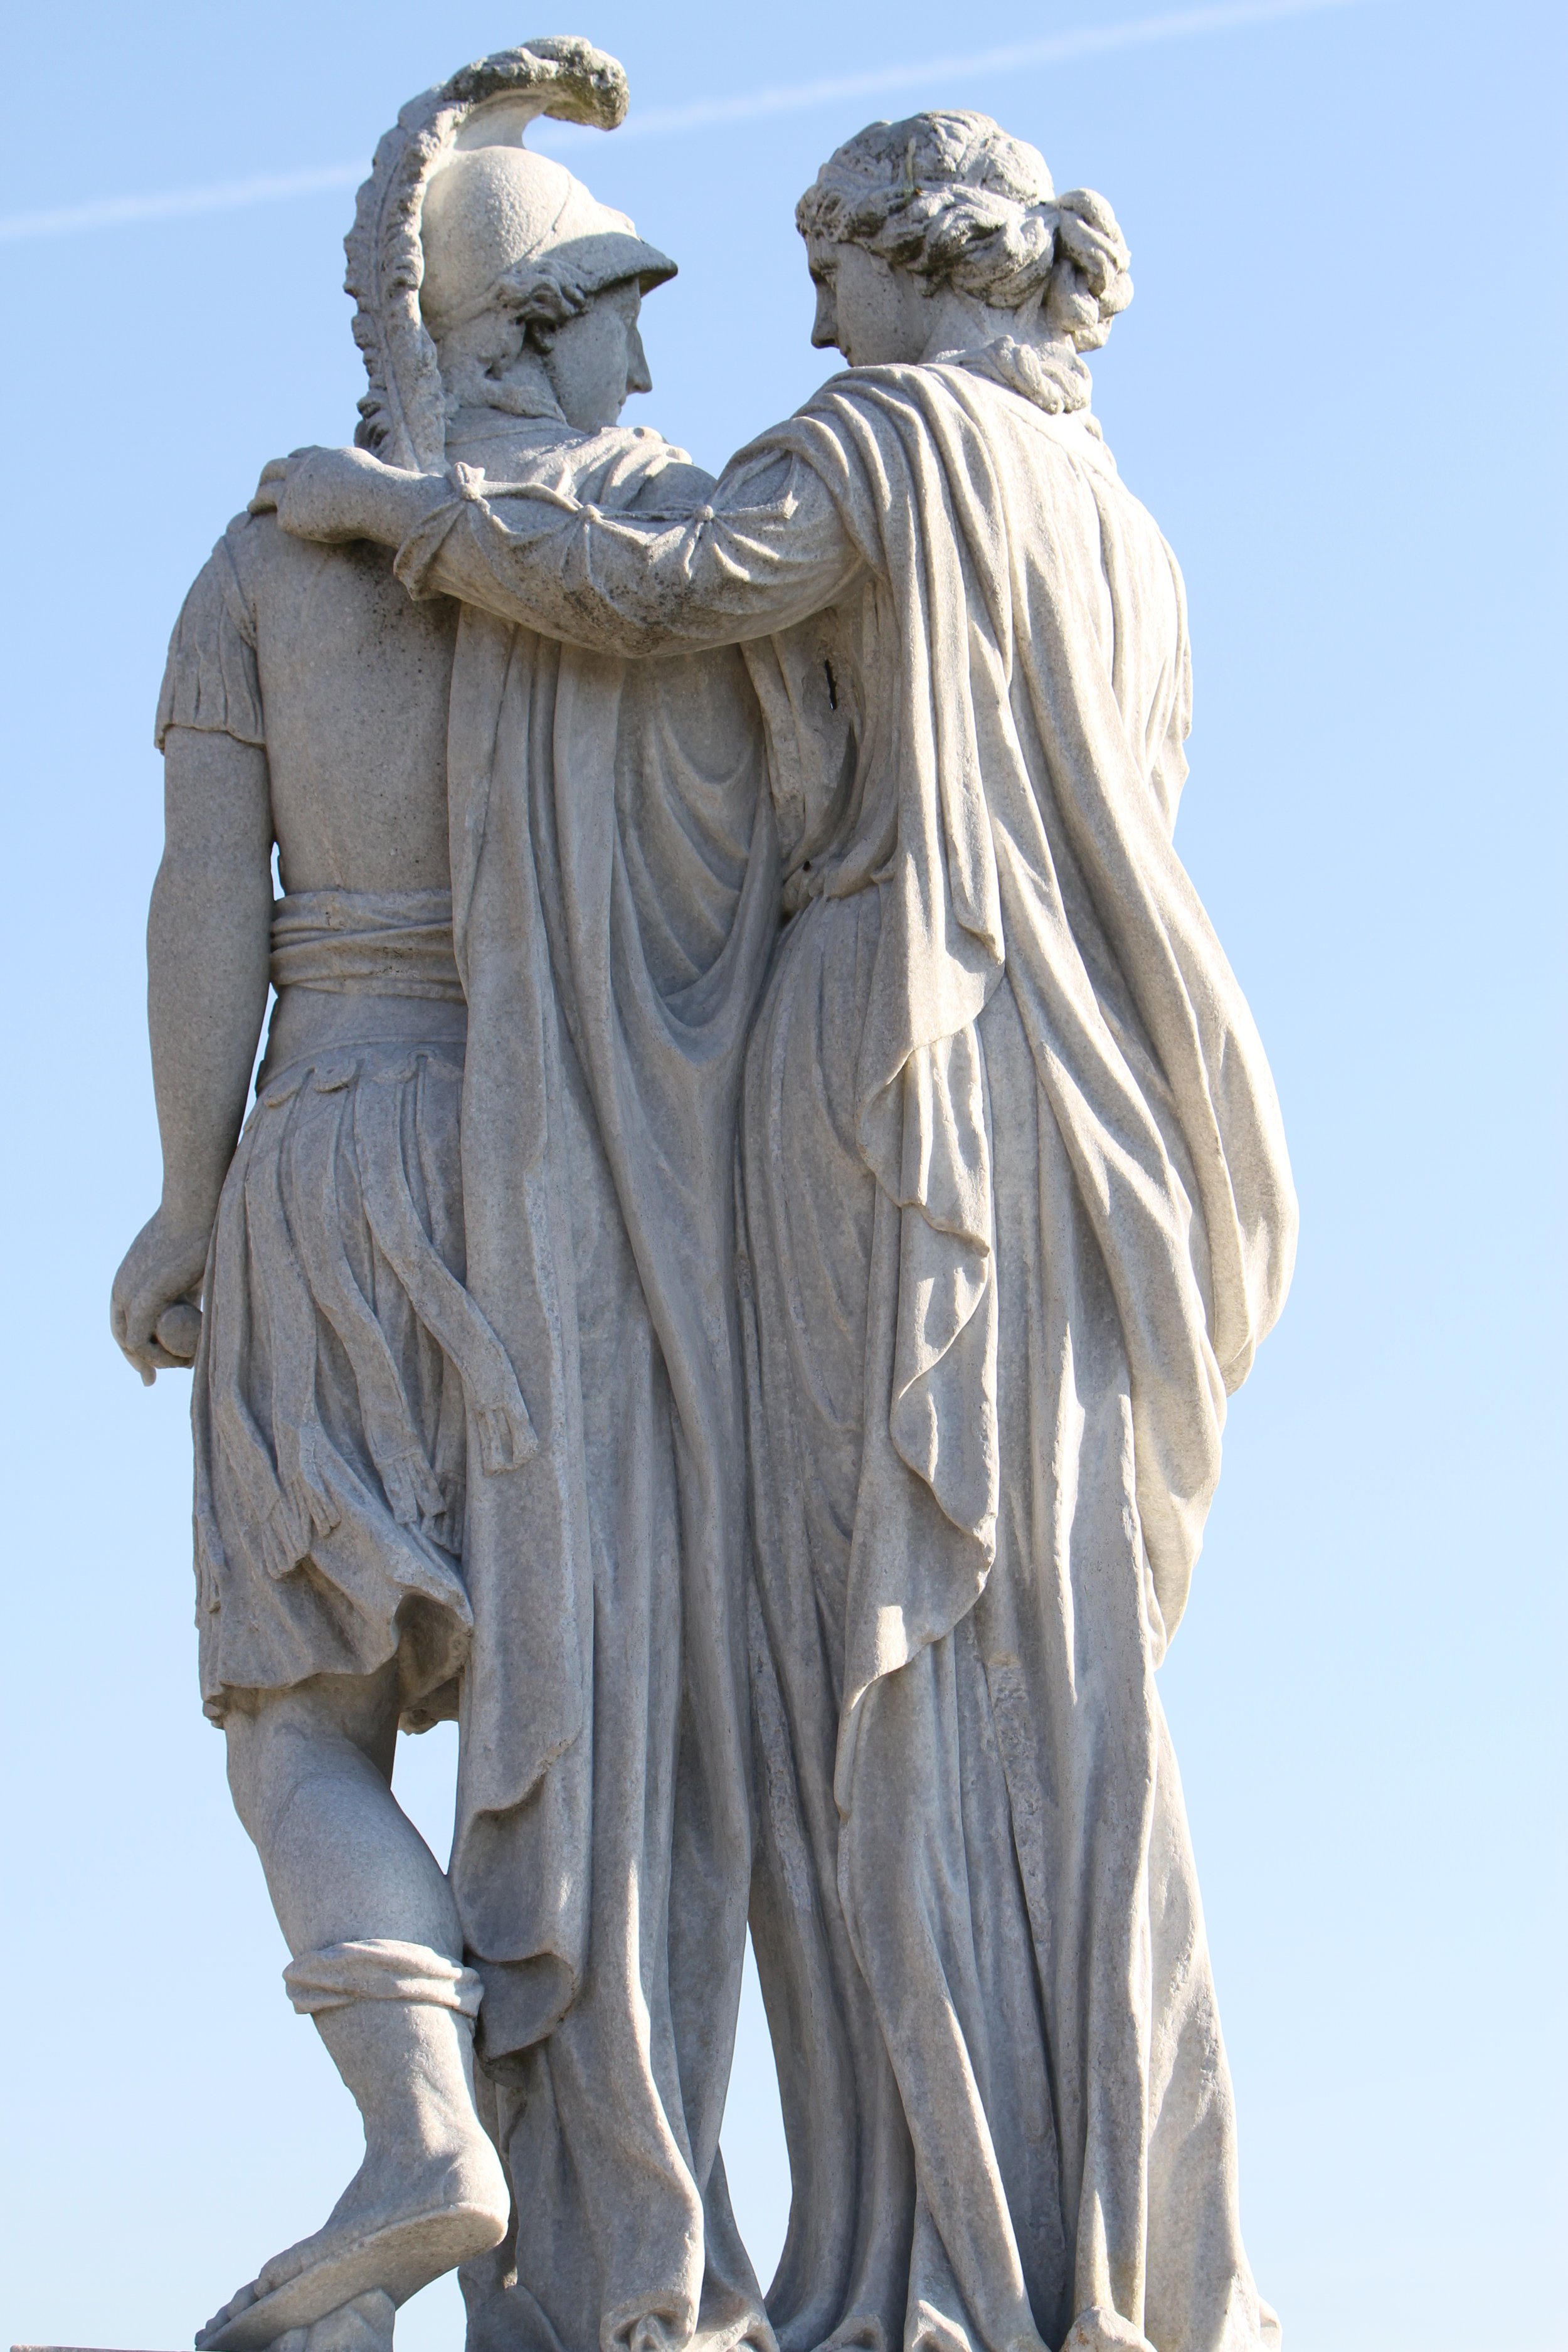 Don't worry, Alex. Momma's got you. - A statue of Olympias and Alexander from Vienna, Wikicommons